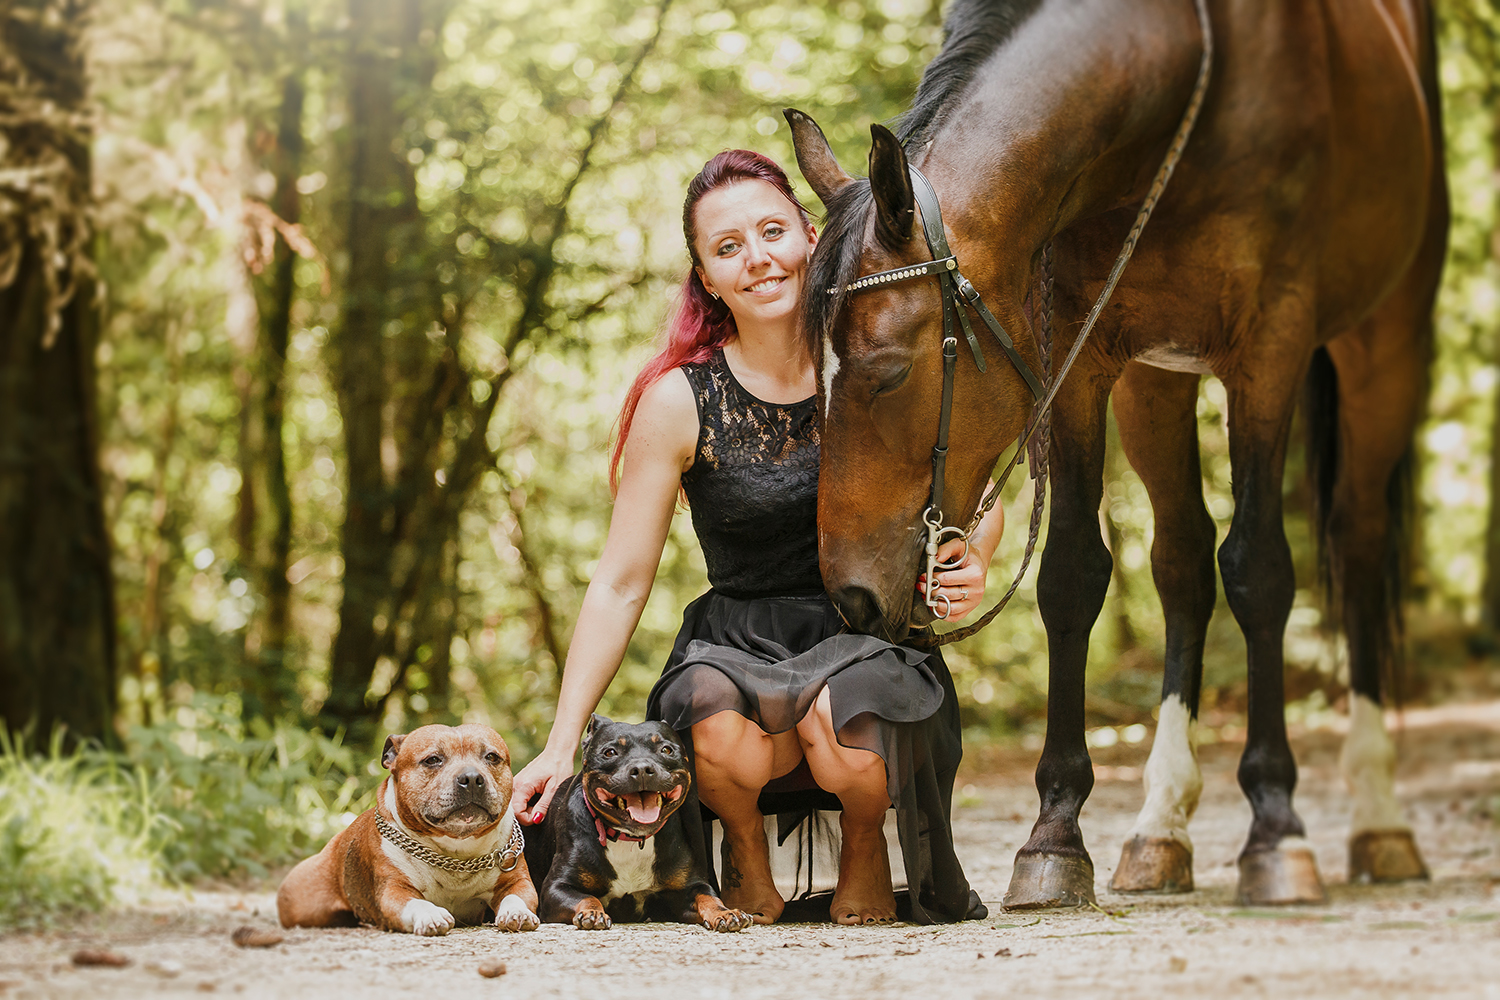 SN1_1616-sophie-narses-photographe-annecy-haute-savoie-book-shooting-portrait-geneve-suisse-famille-animaux-tirages-photo-modele-rhone-alpes-france-animaux-cheval-chien-grossesse-enfant-famille